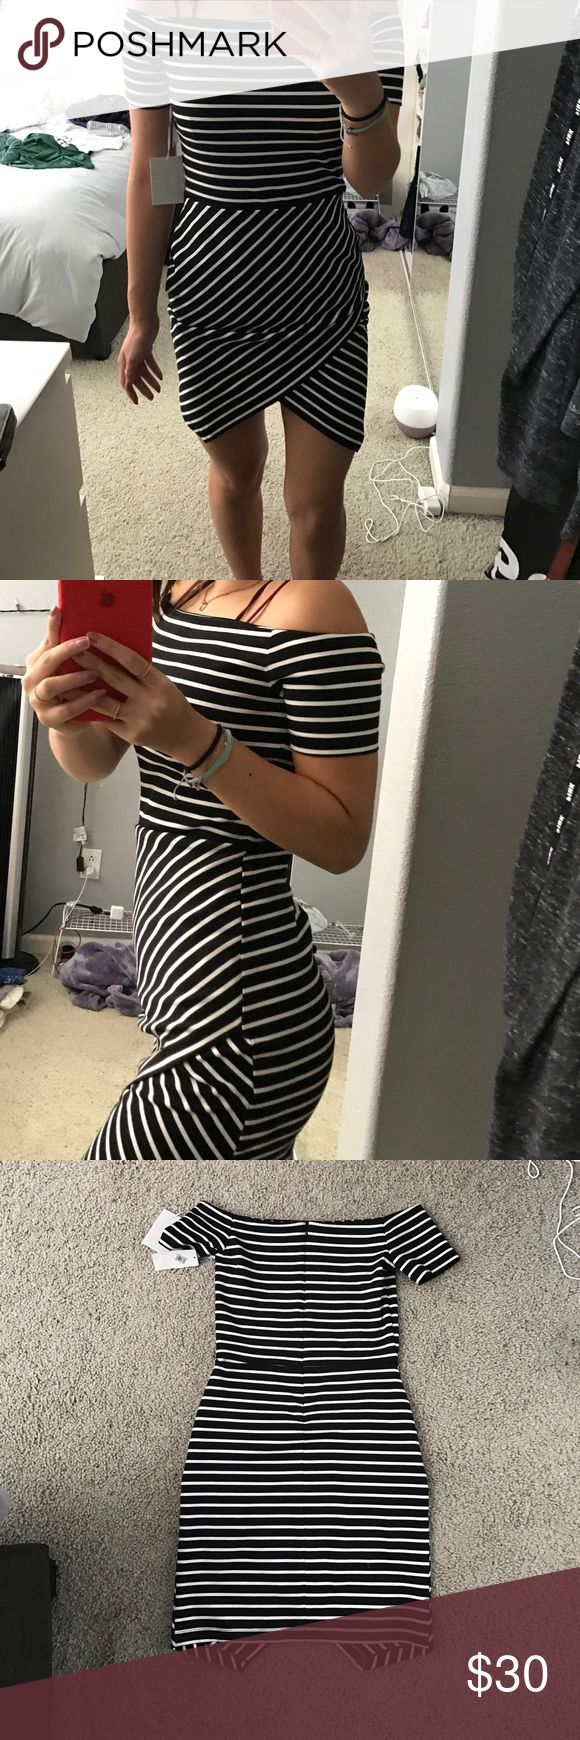 Off the shoulder bodycon dress super cute striped off the shoulder bodycon dress! In the back the stitches came out BUT NOT A HOLE it's like 2 layers! Never worn! Bought it at NORDSTROM RACK LIKE THAT. Make offers! 1. State Dresses Mini